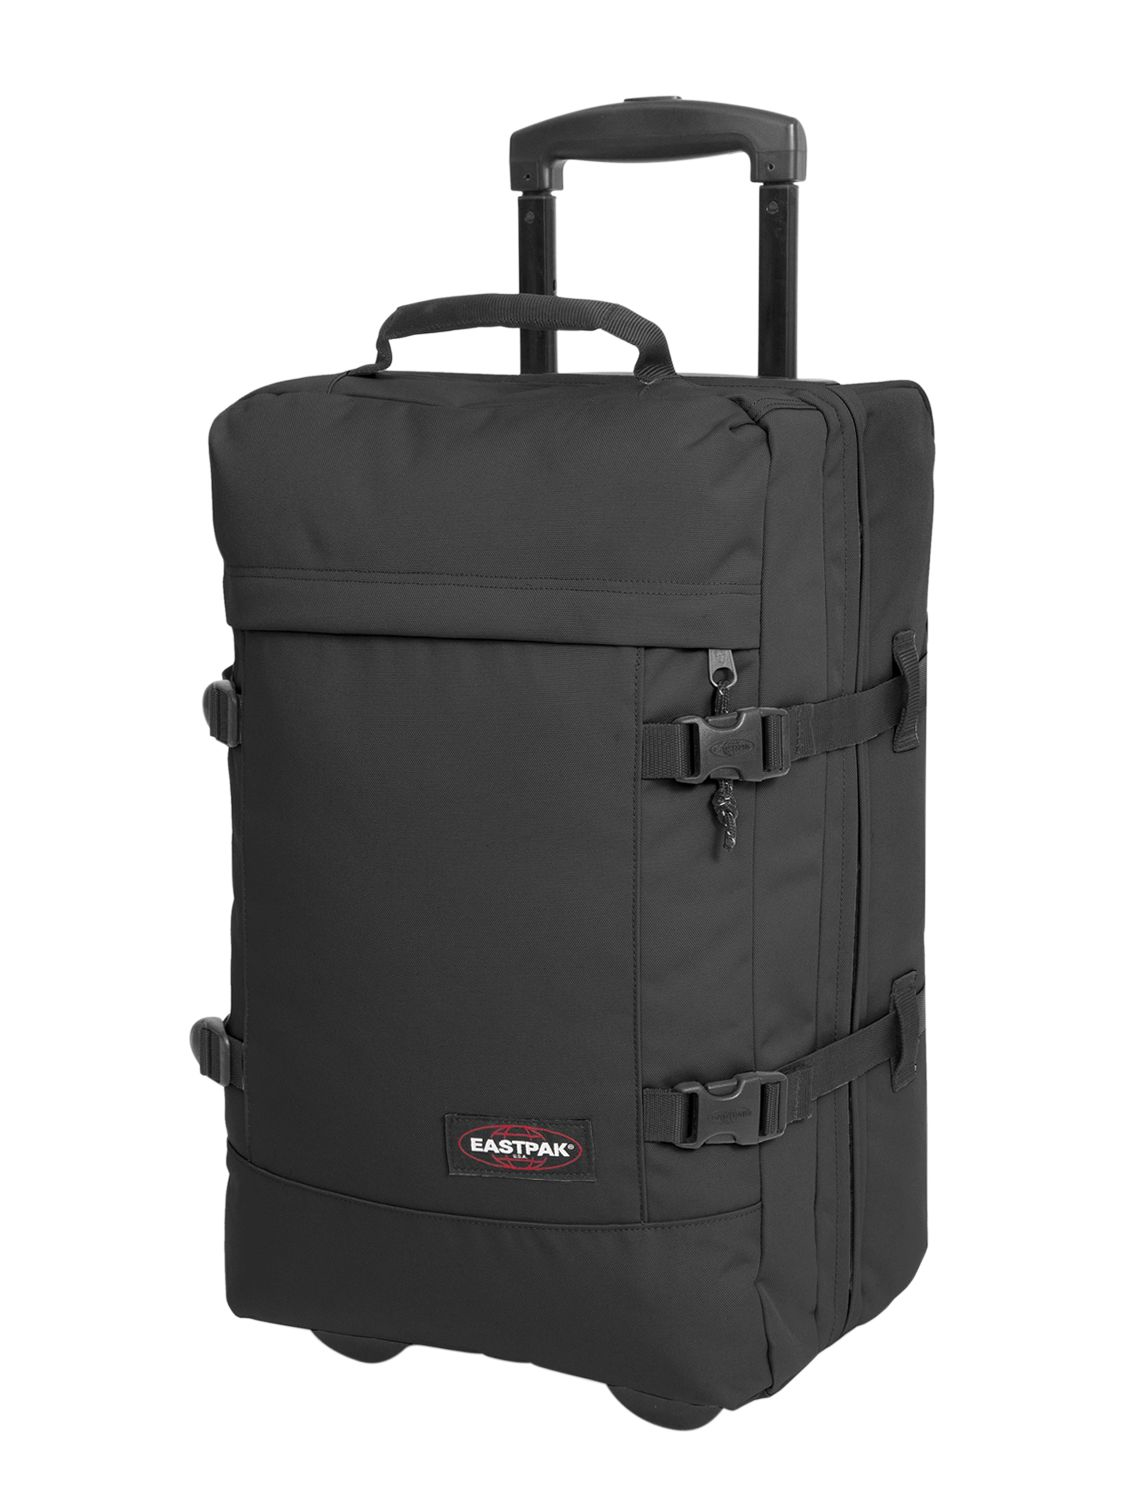 Eastpak 42l Strapverz Carry On Trolly & Backpack in Black | Lyst